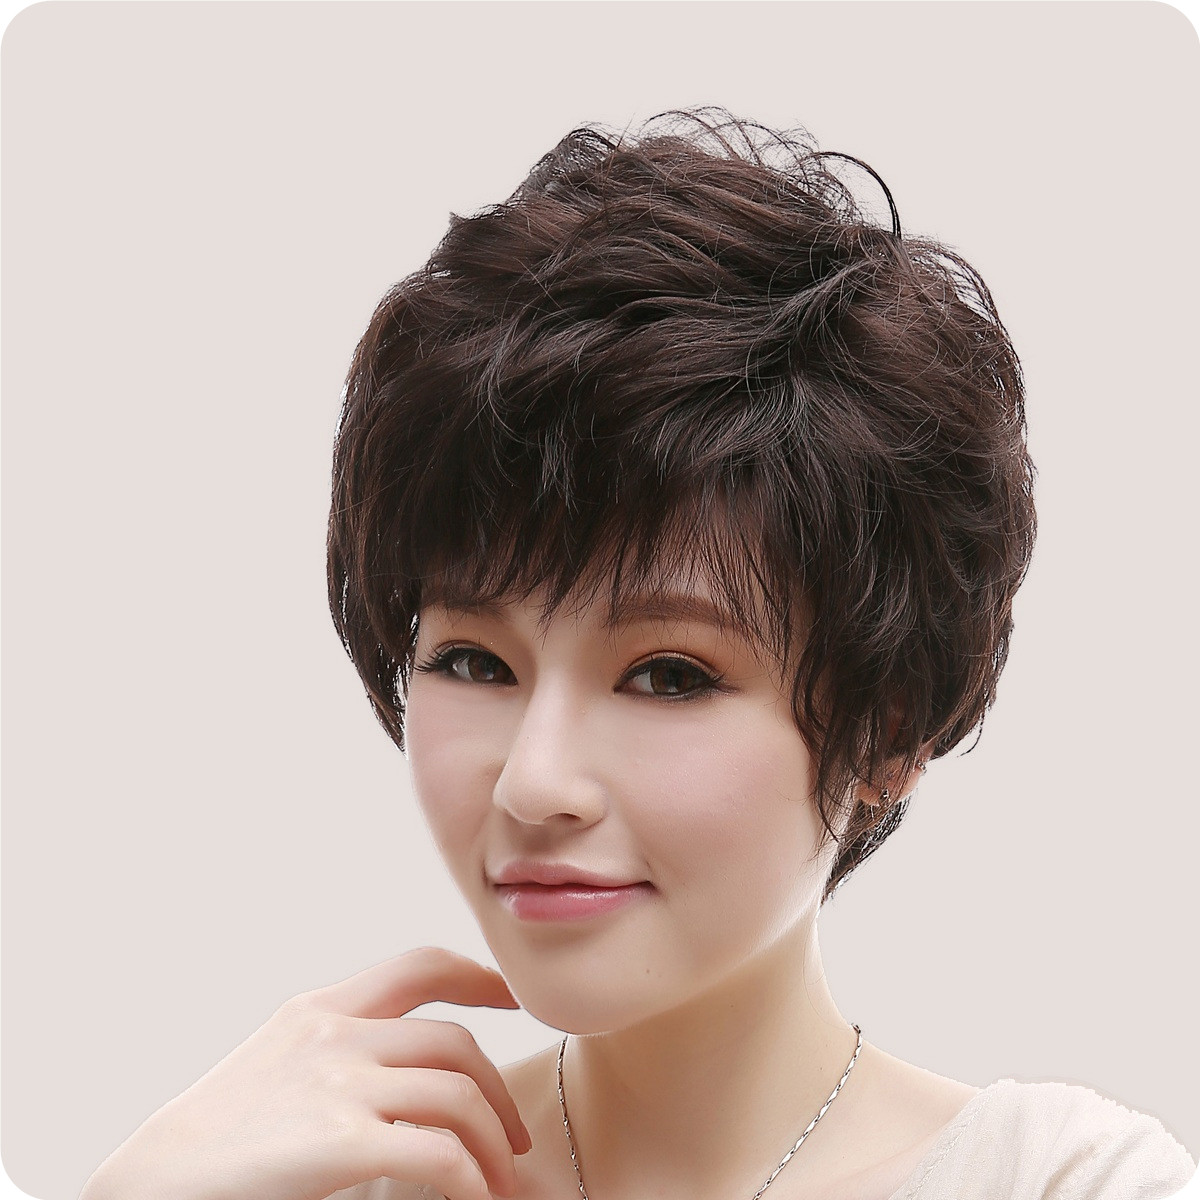 Real hair wig middle-aged woman with short hair curly hair wig middle-aged mother wig wig lady mom gifted odd wig